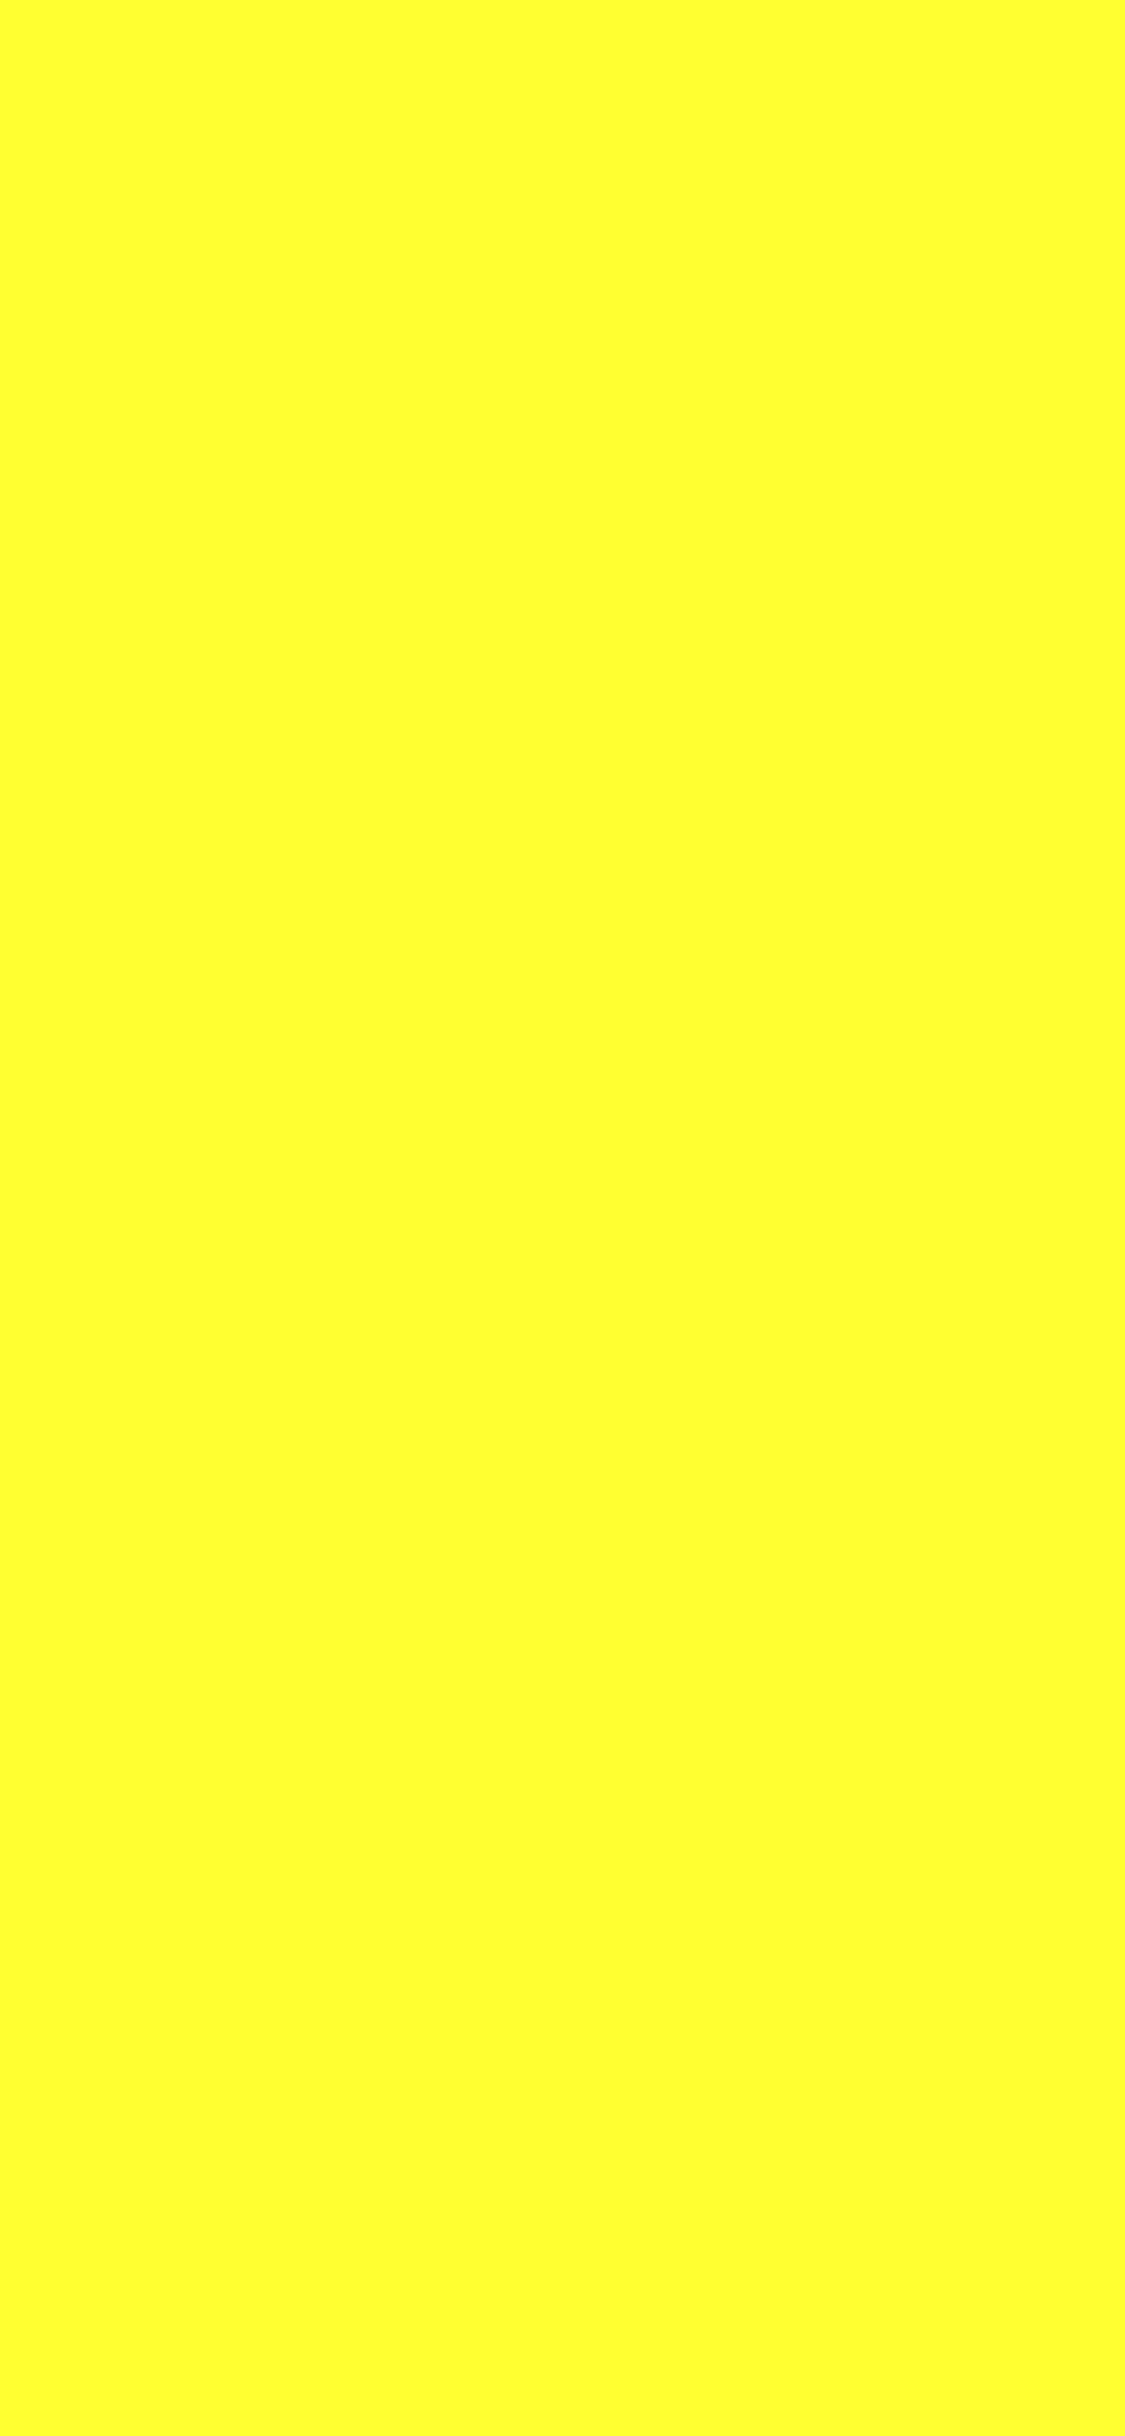 1125x2436 Daffodil Solid Color Background